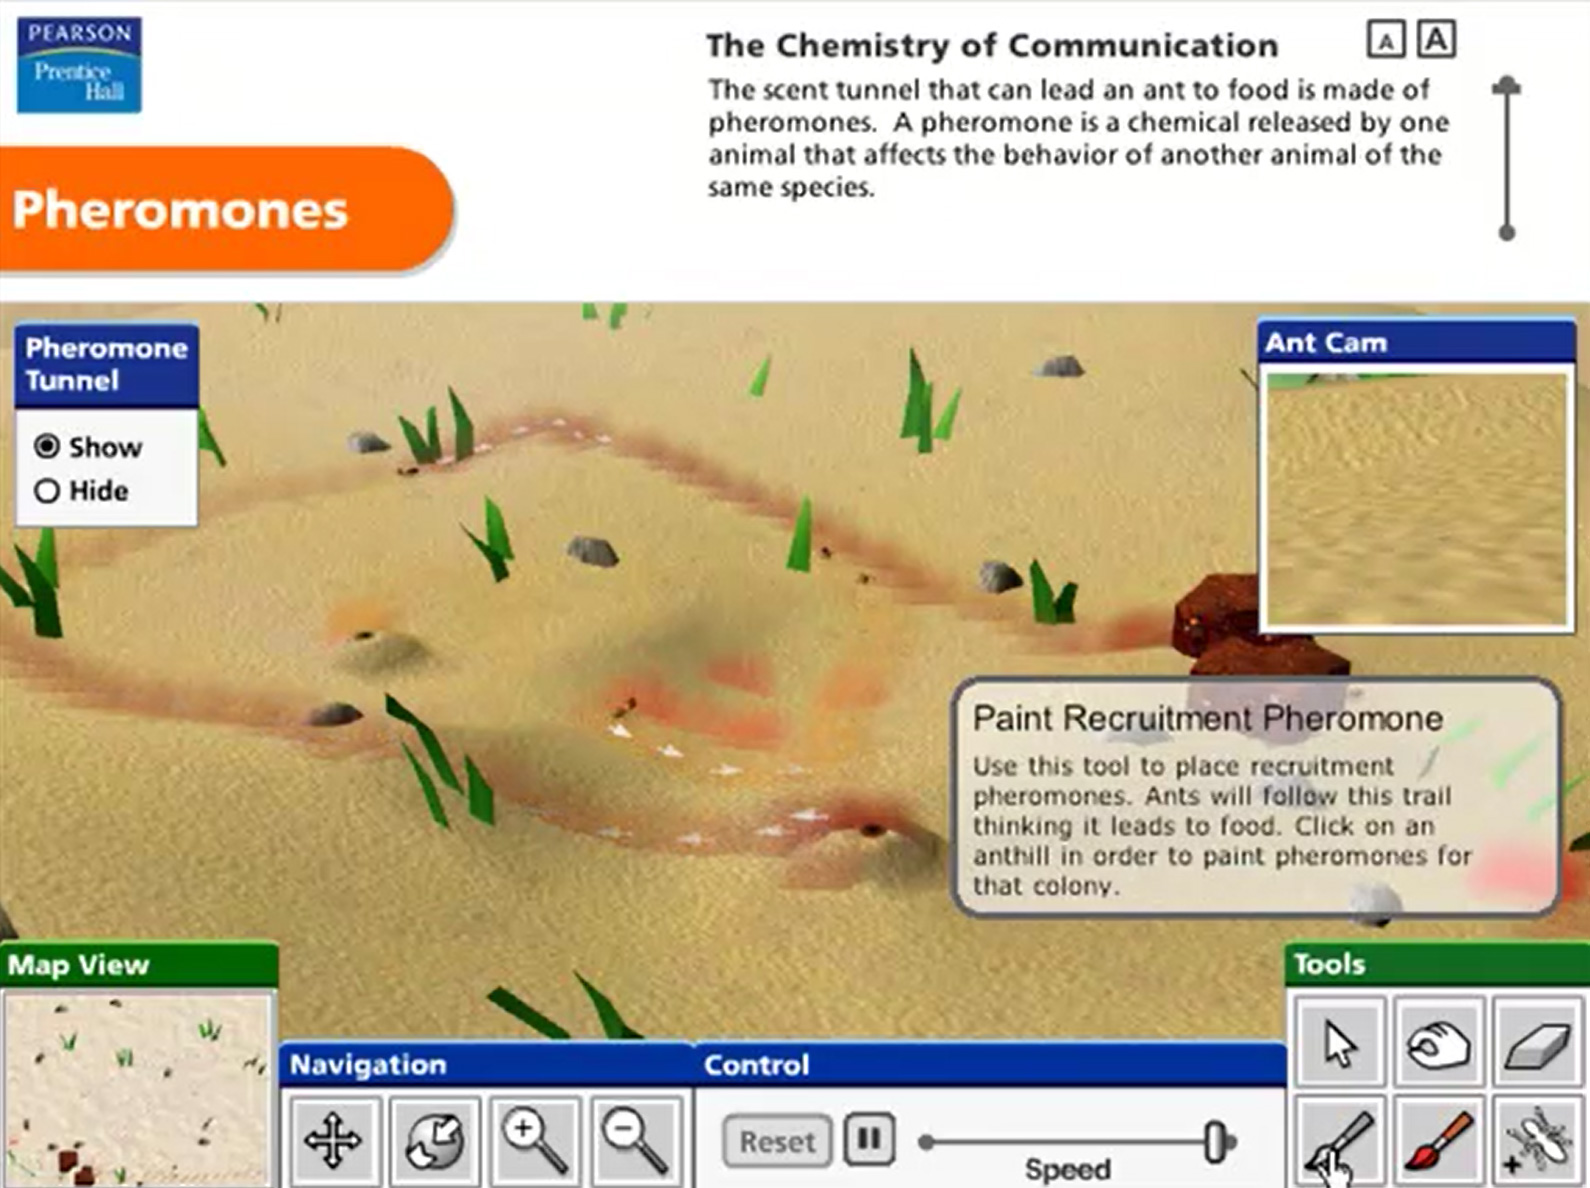 Pearson Education Virtual Science Experiments by ForgeFX Simulations, Pheromones Simulator